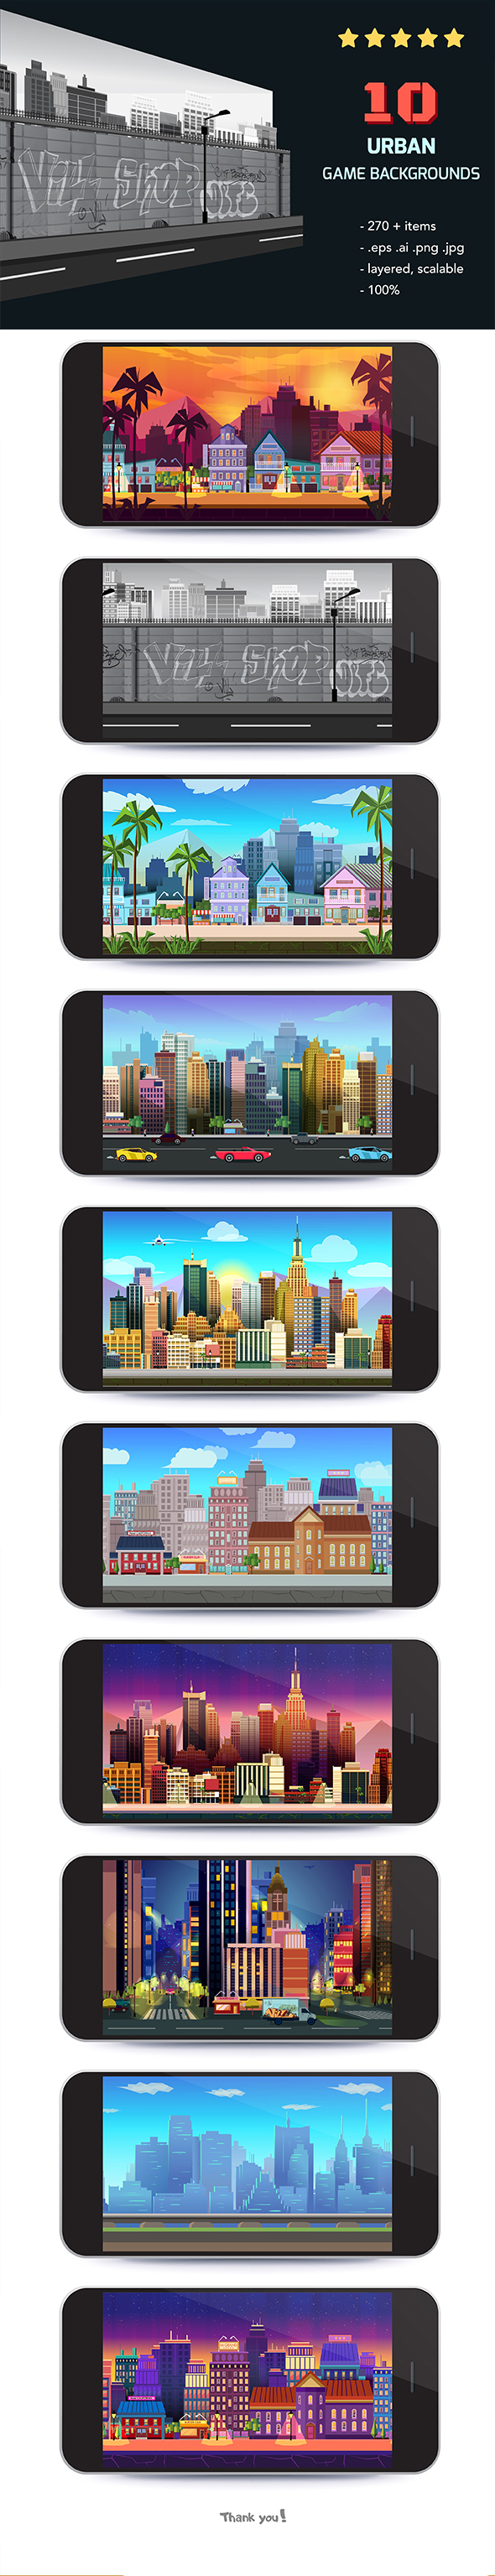 10 Urban Game Backgrounds example image 2